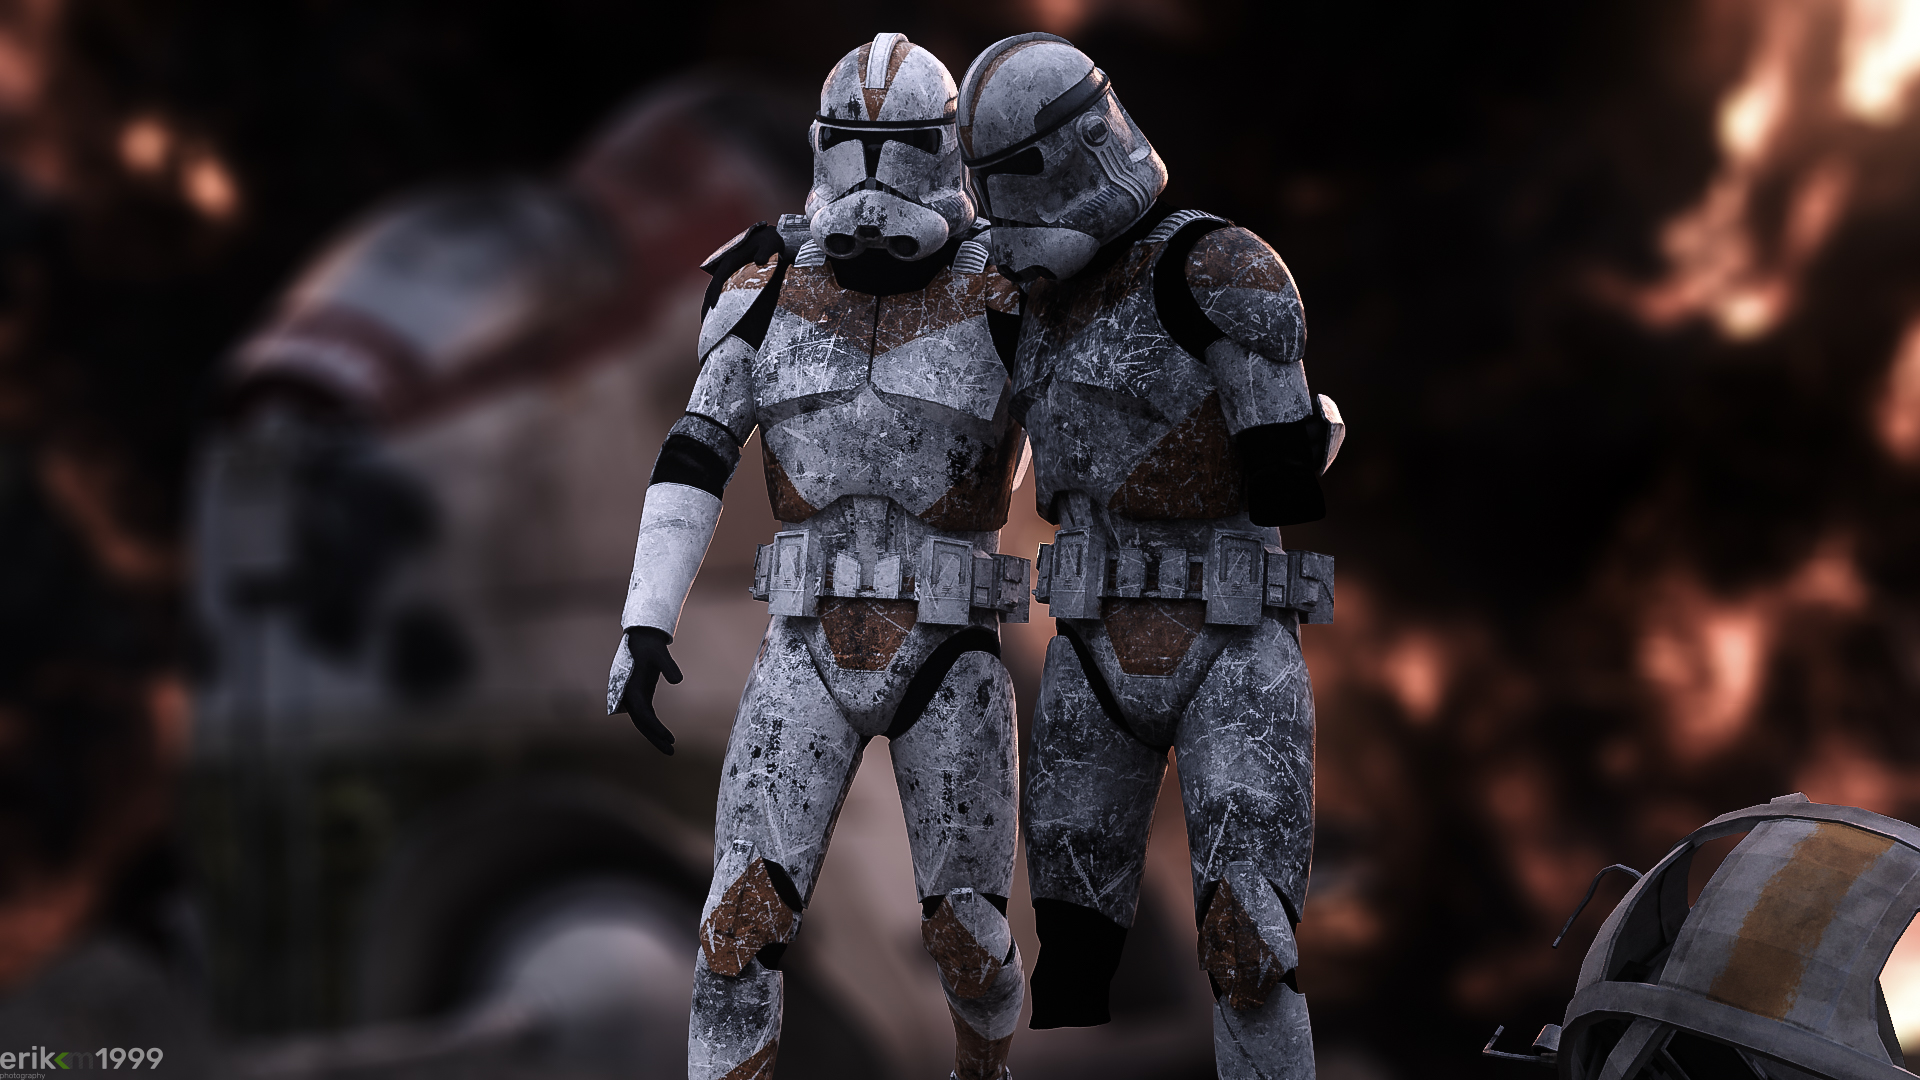 brothers in arms are brothers for lifeerik-m1999 on deviantart